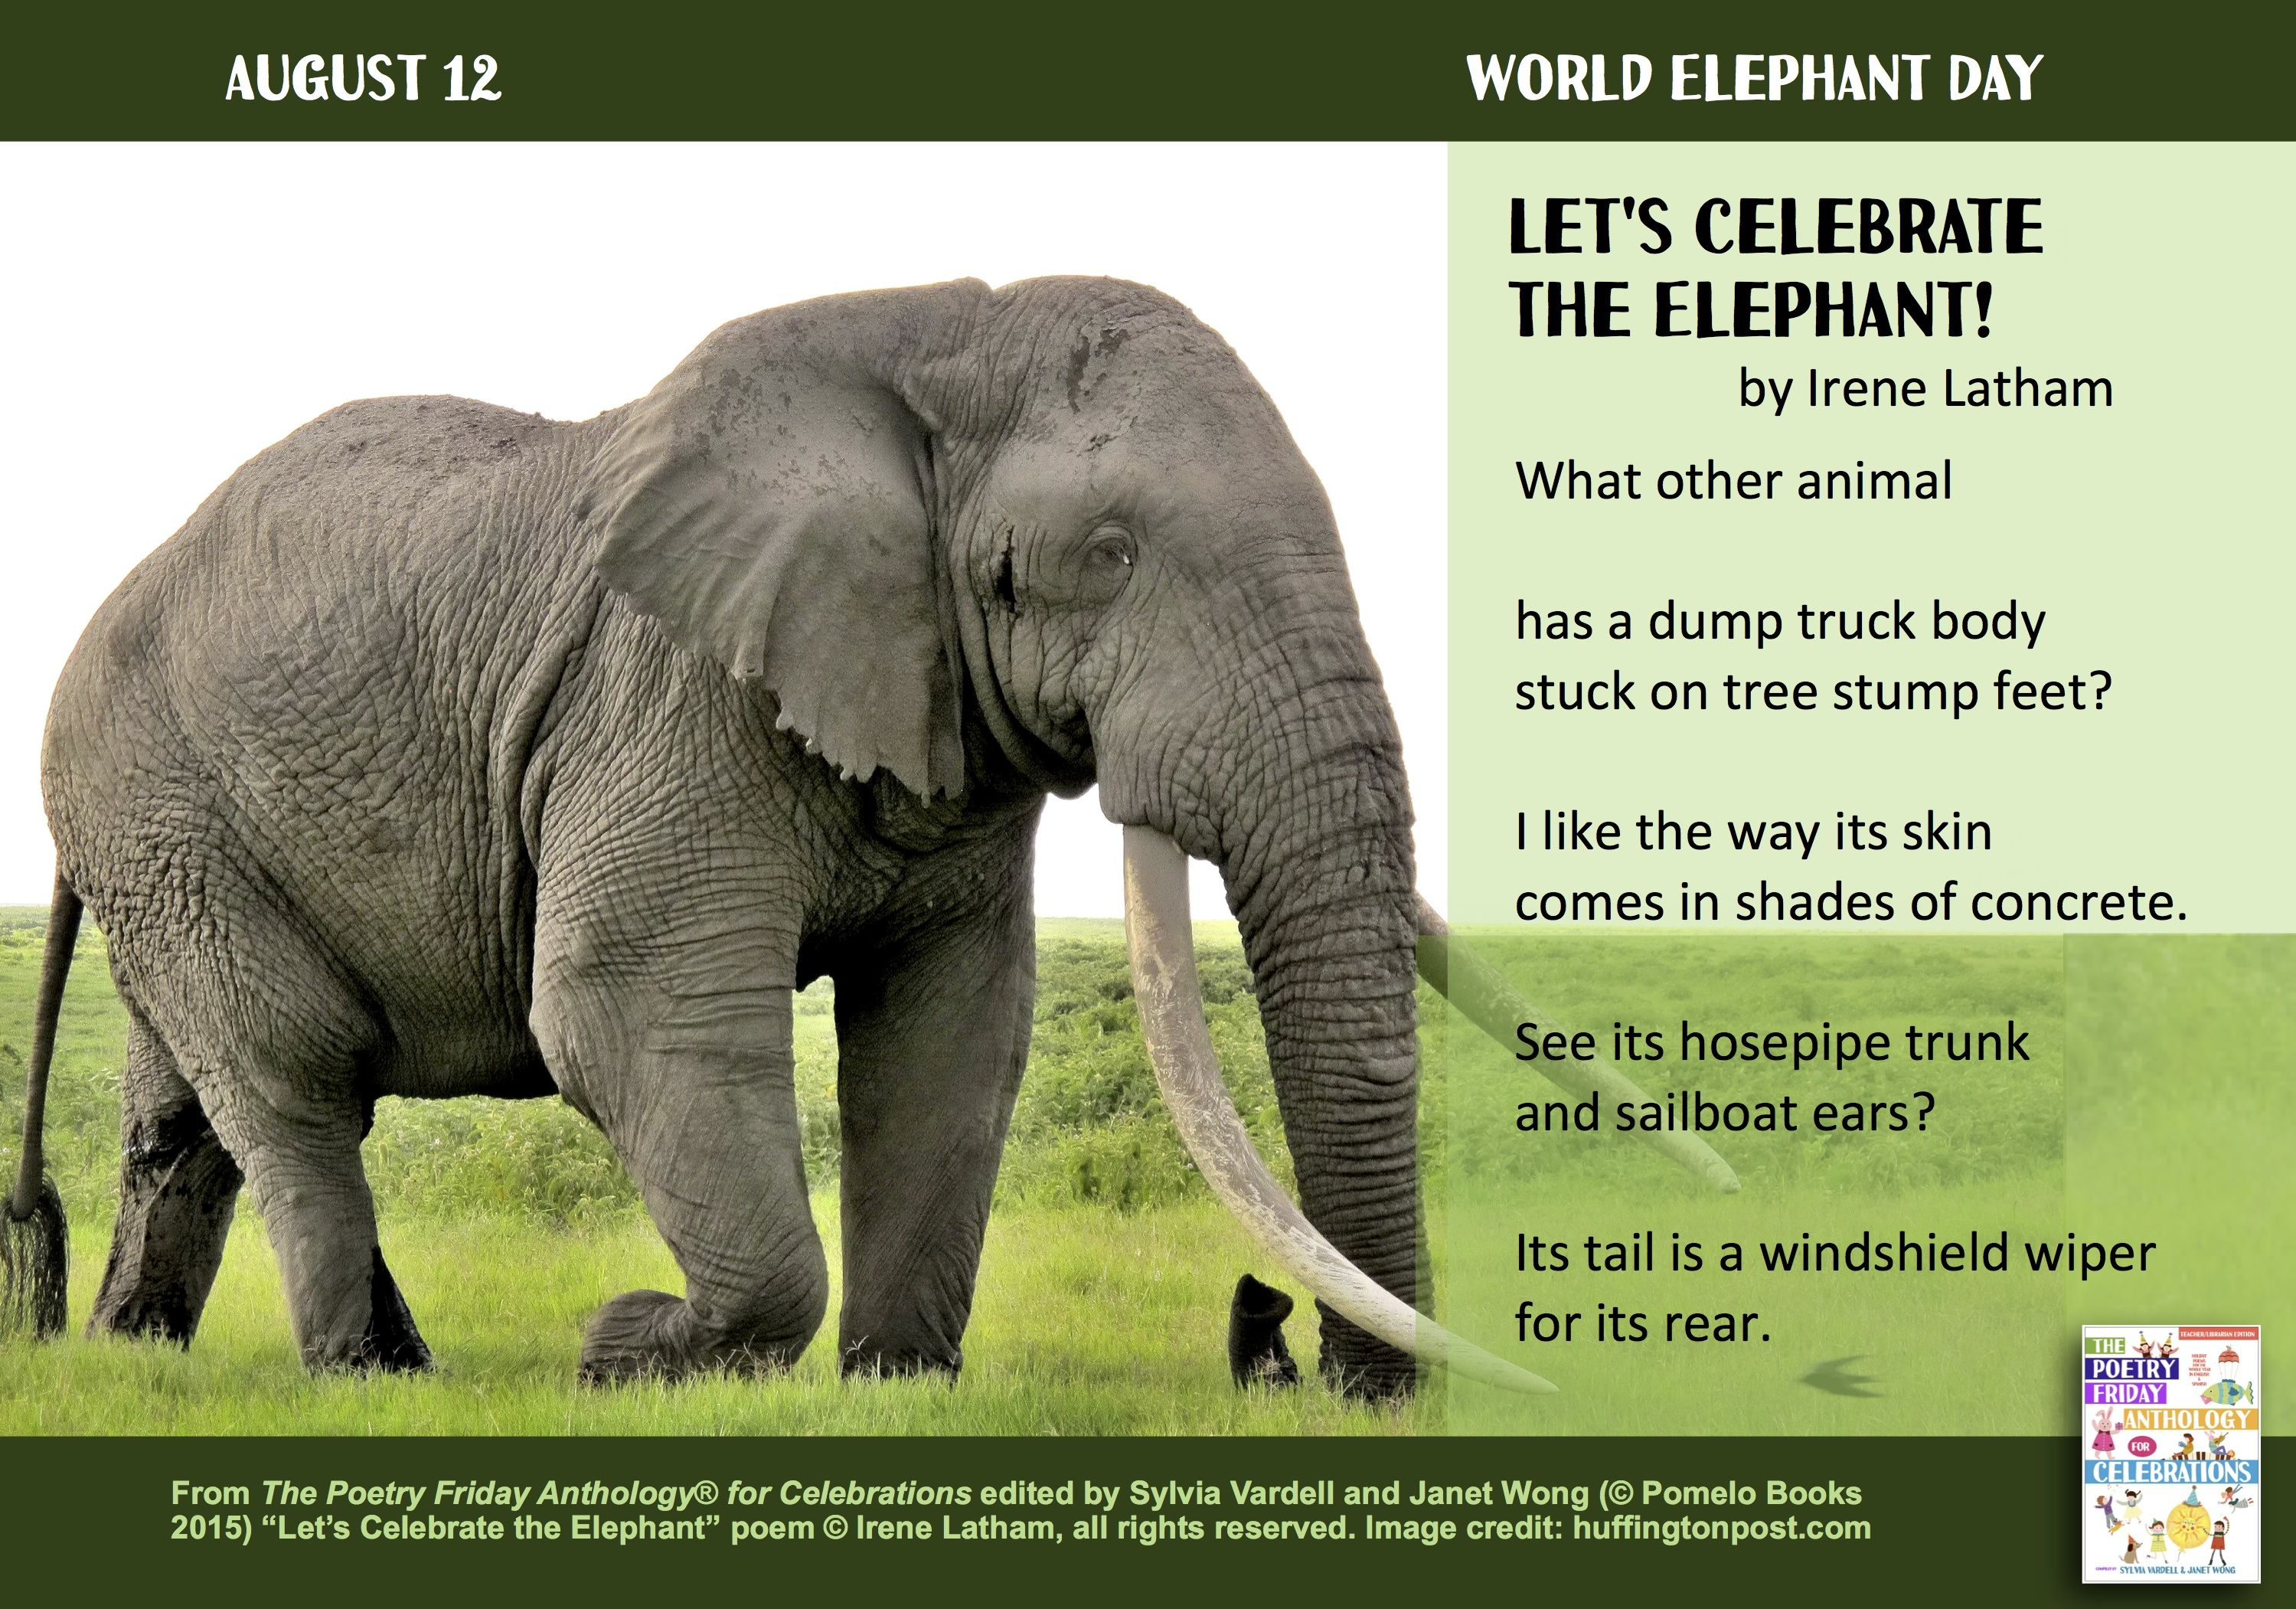 """Let's Celebrate the Elephant!"" with this poem by Irene Latham  from THE POETRY FRIDAY ANTHOLOGY® FOR CELEBRATIONS edited by Sylvia Vardell and Janet Wong (Pomelo Books, 2015)"